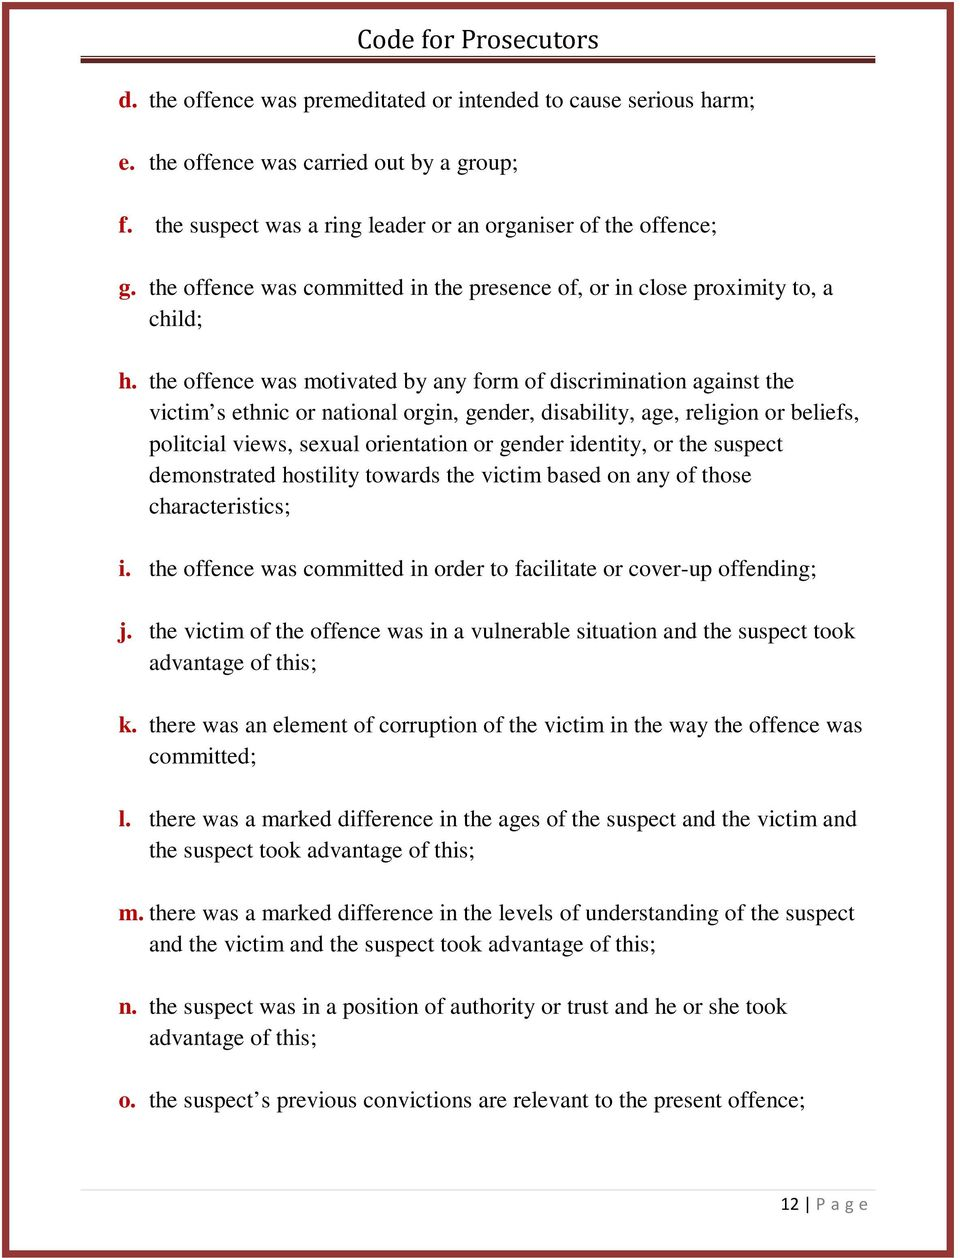 the offence was motivated by any form of discrimination against the victim s ethnic or national orgin, gender, disability, age, religion or beliefs, politcial views, sexual orientation or gender